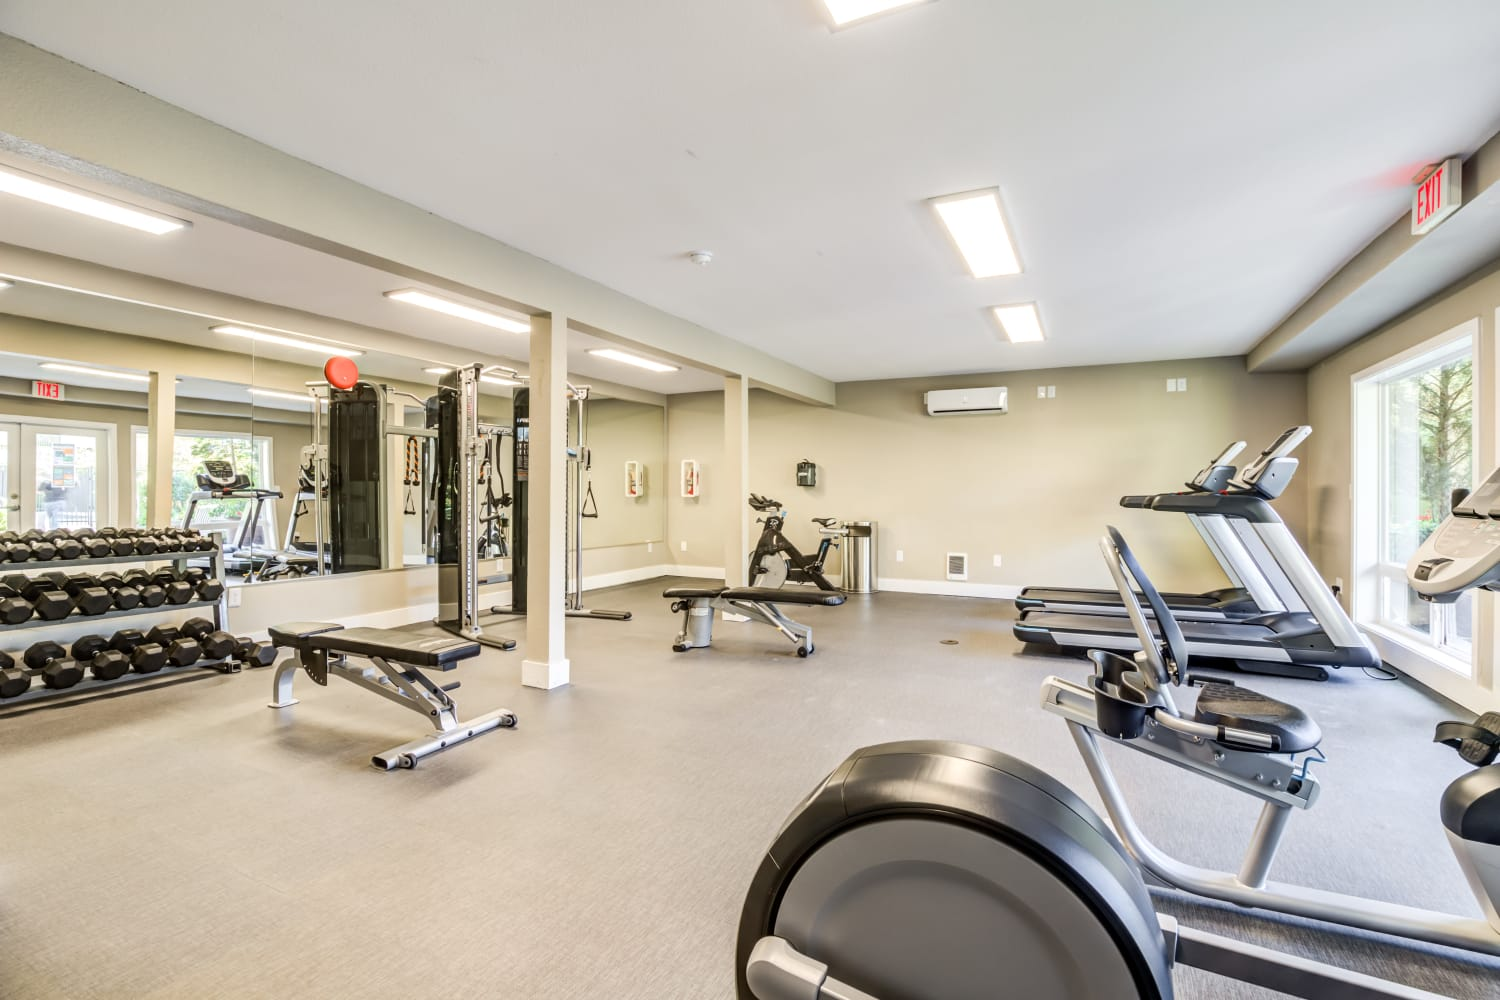 Edgewood Park Apartments offers a Renovated Fitness Center in Bellevue, Washington